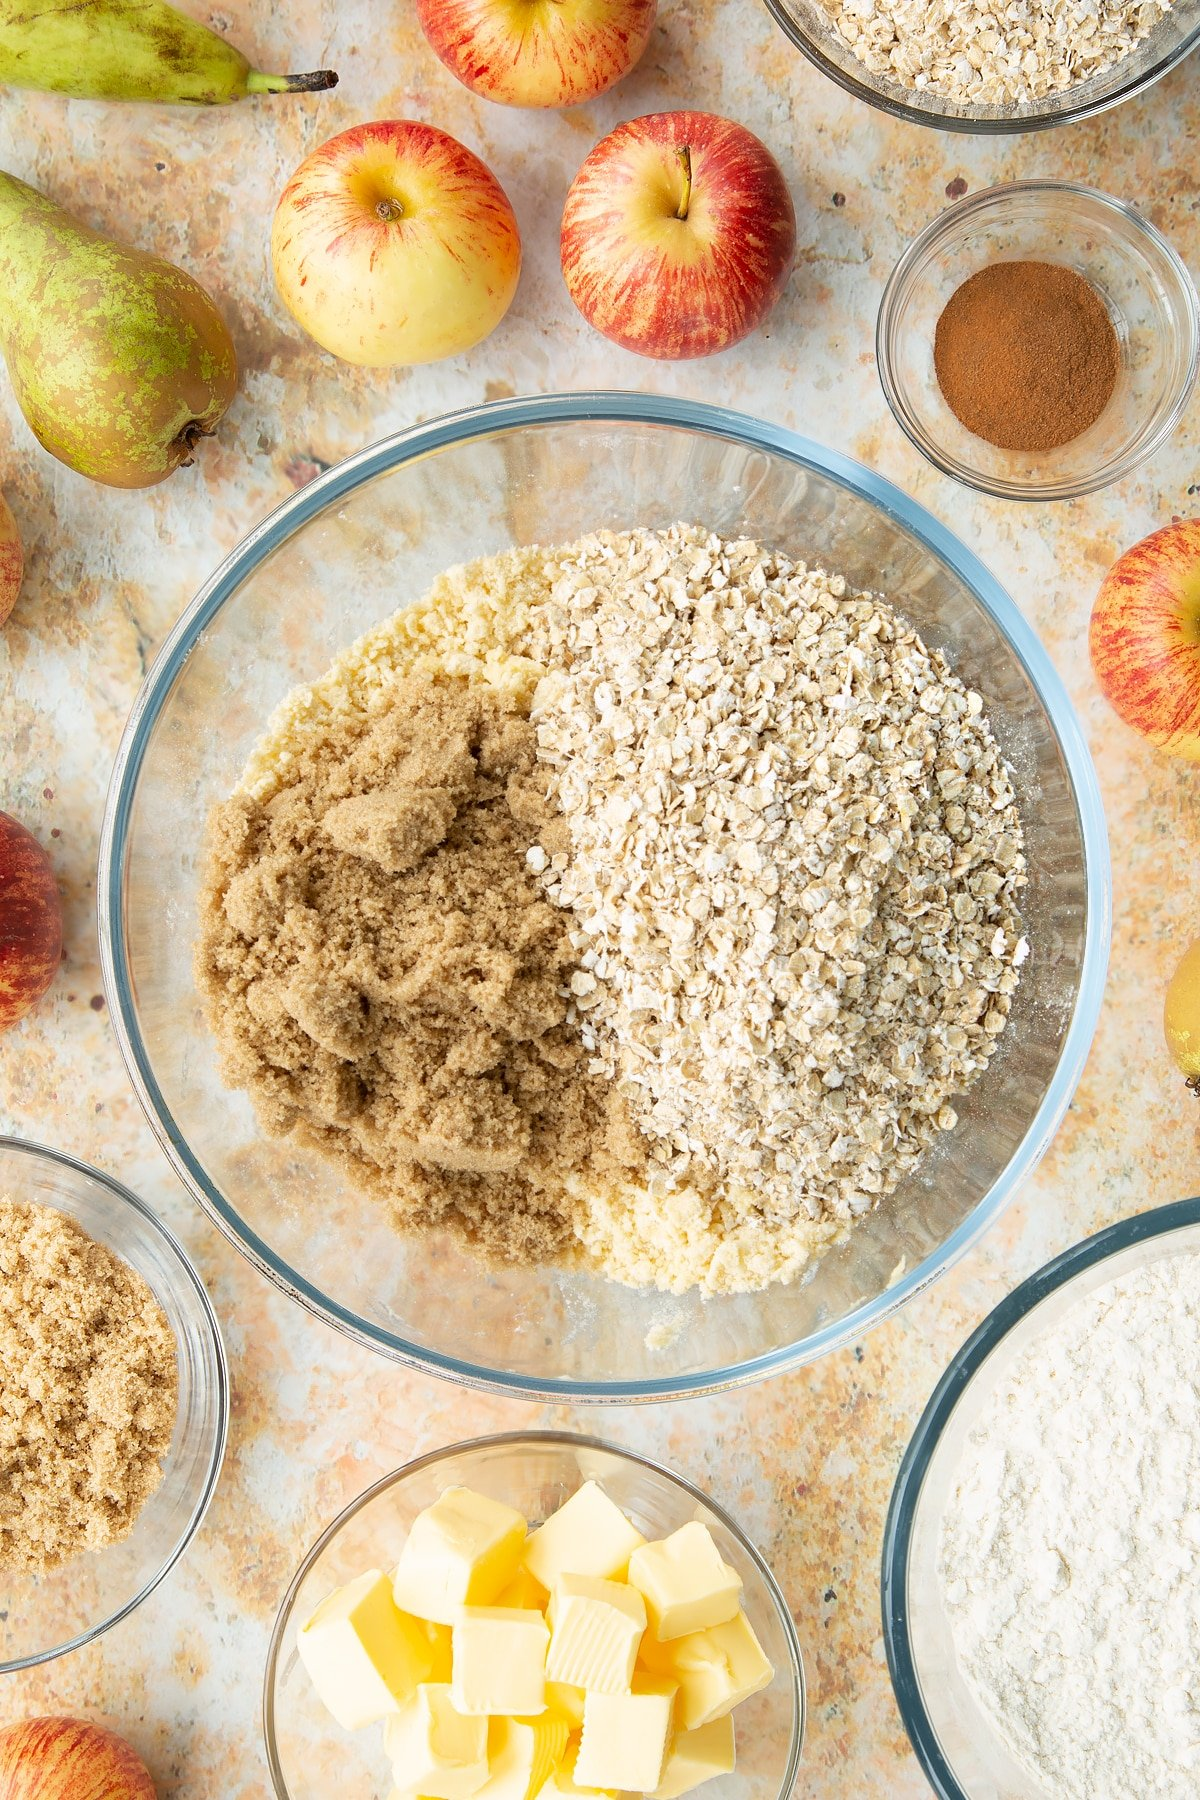 Flour and butter rubbed together in a mixing bowl with sugar and oats on top. Ingredients to make easy apple pear crumble surround the bowl.